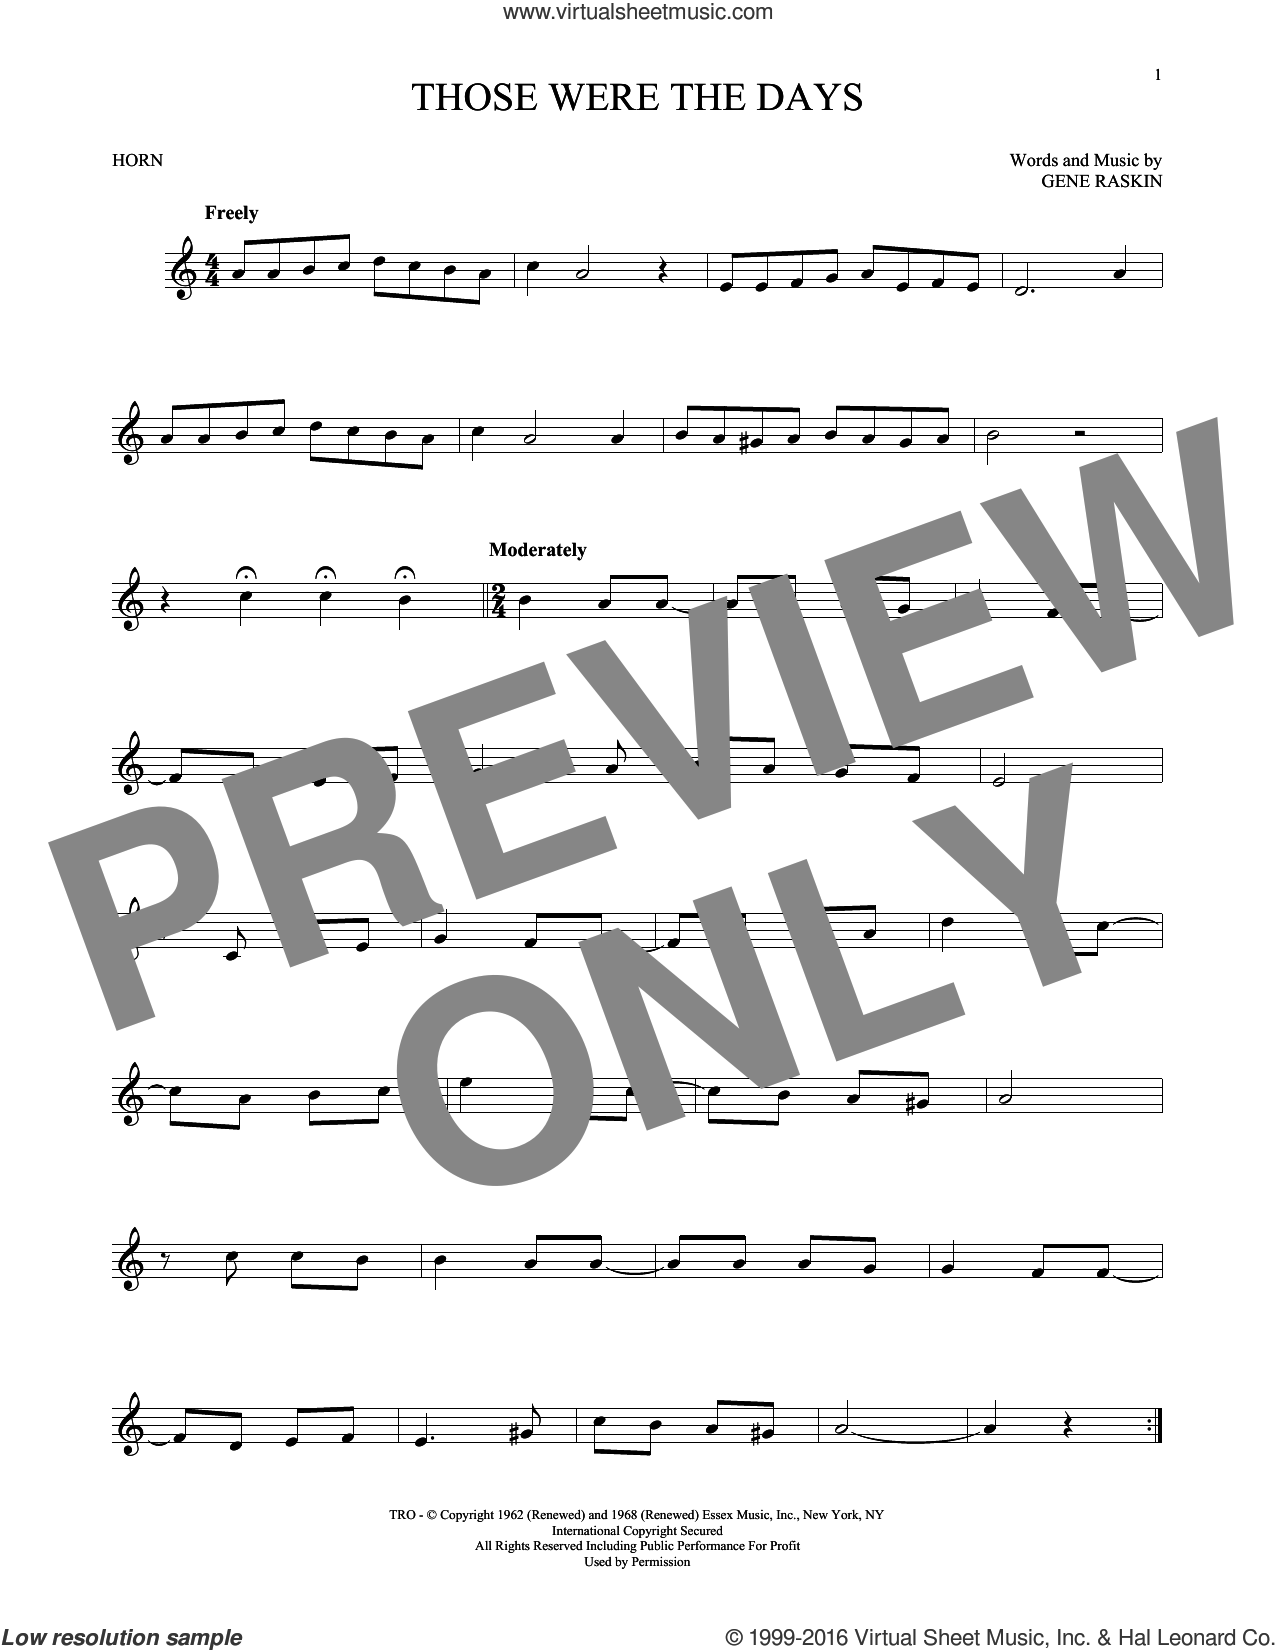 Those Were The Days sheet music for horn solo by Gene Raskin. Score Image Preview.